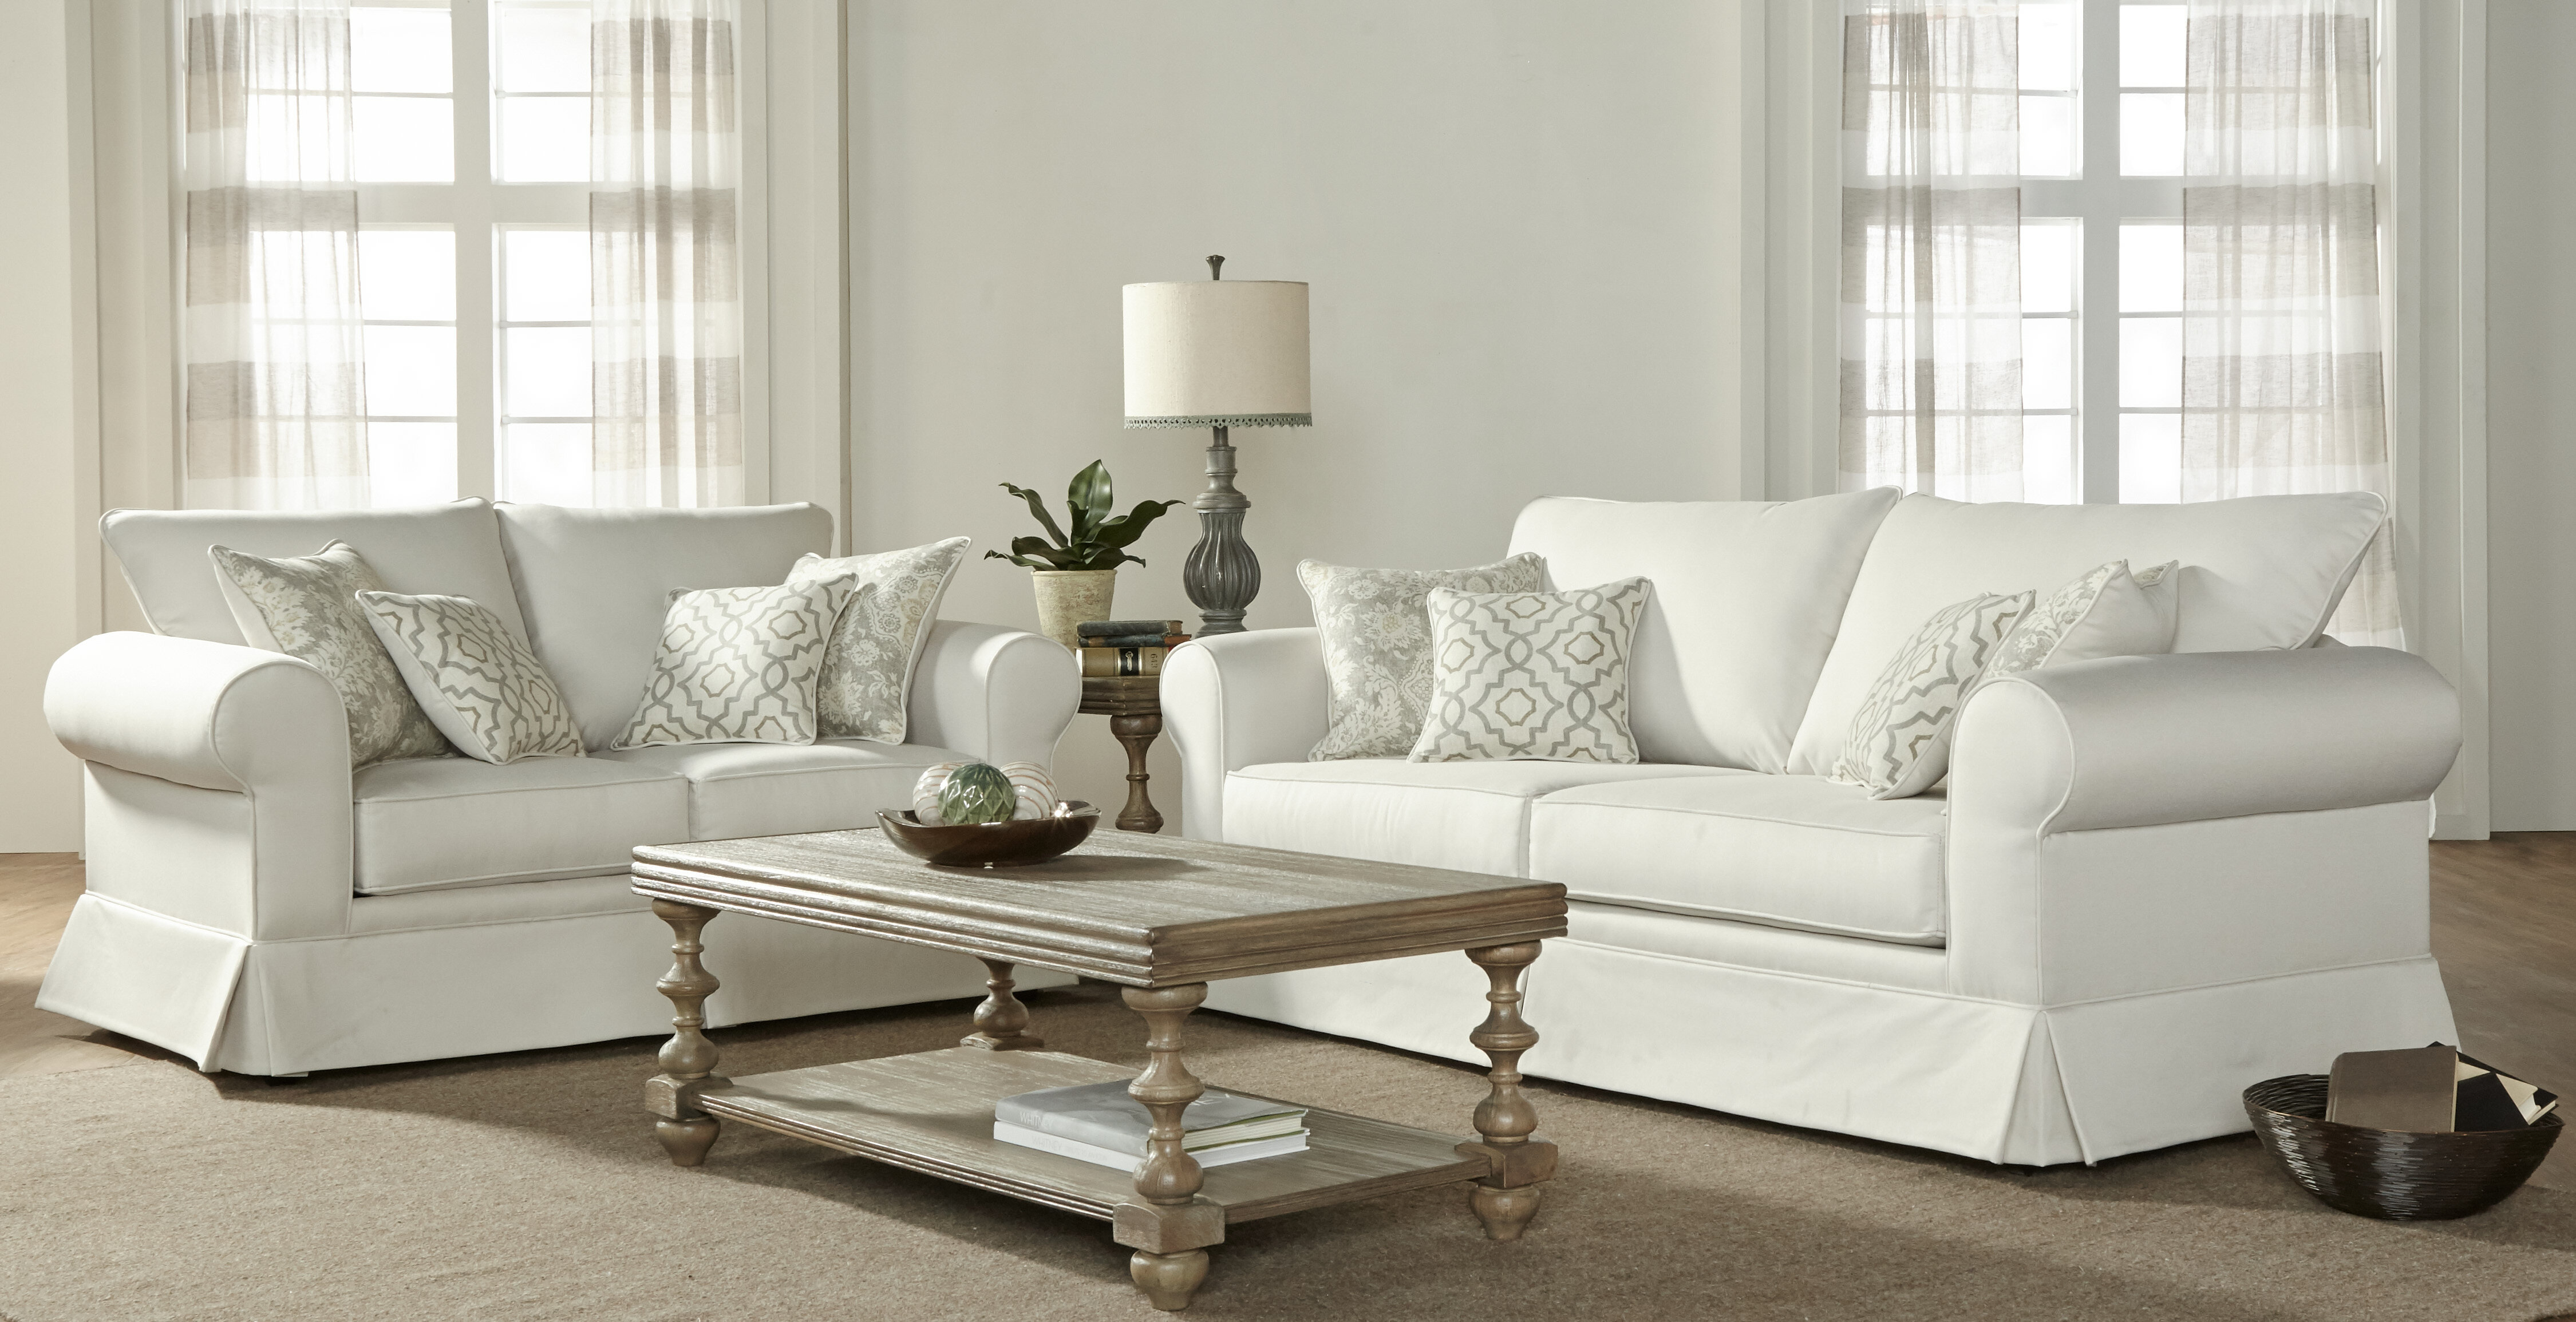 Charlton Home Alverta Configurable Living Room Set & Reviews | Wayfair